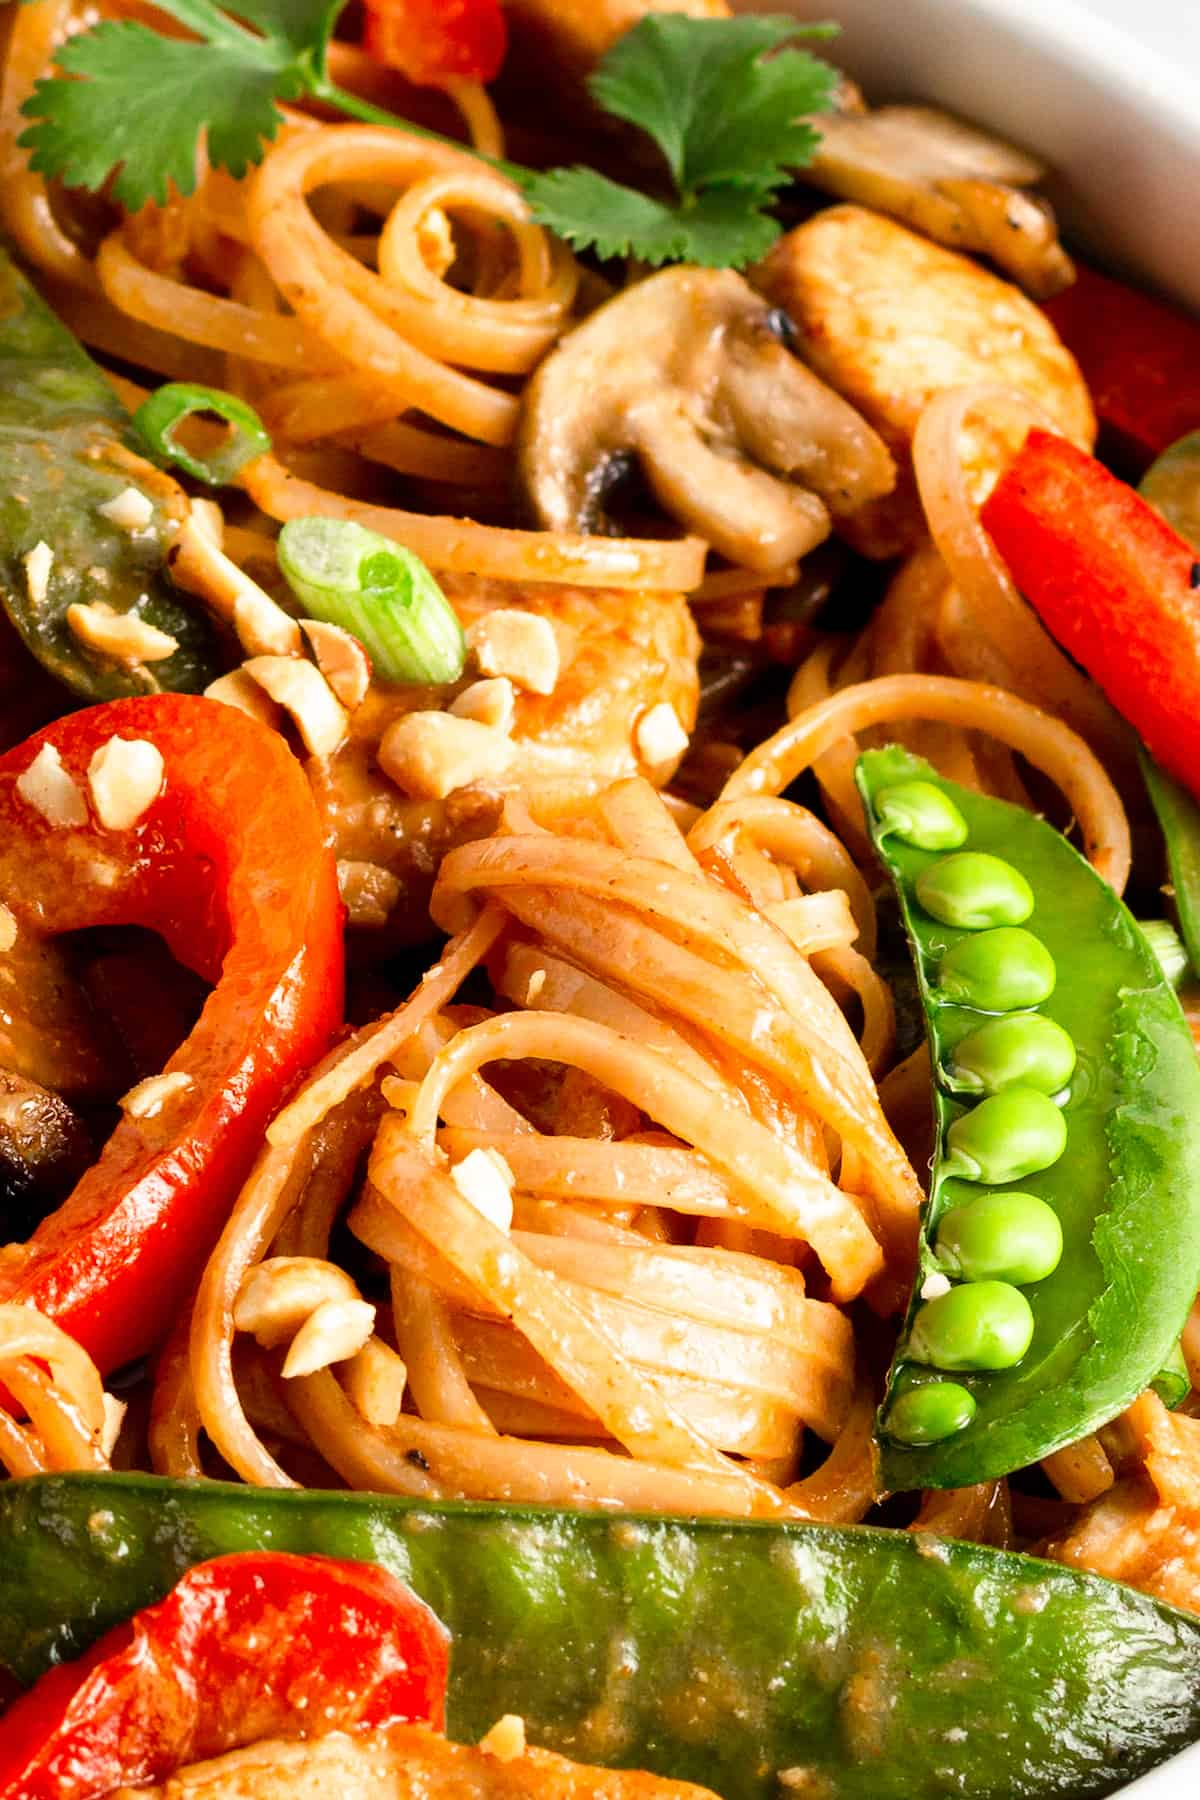 A Close-Up Image of Chicken Lo Mein with Veggies